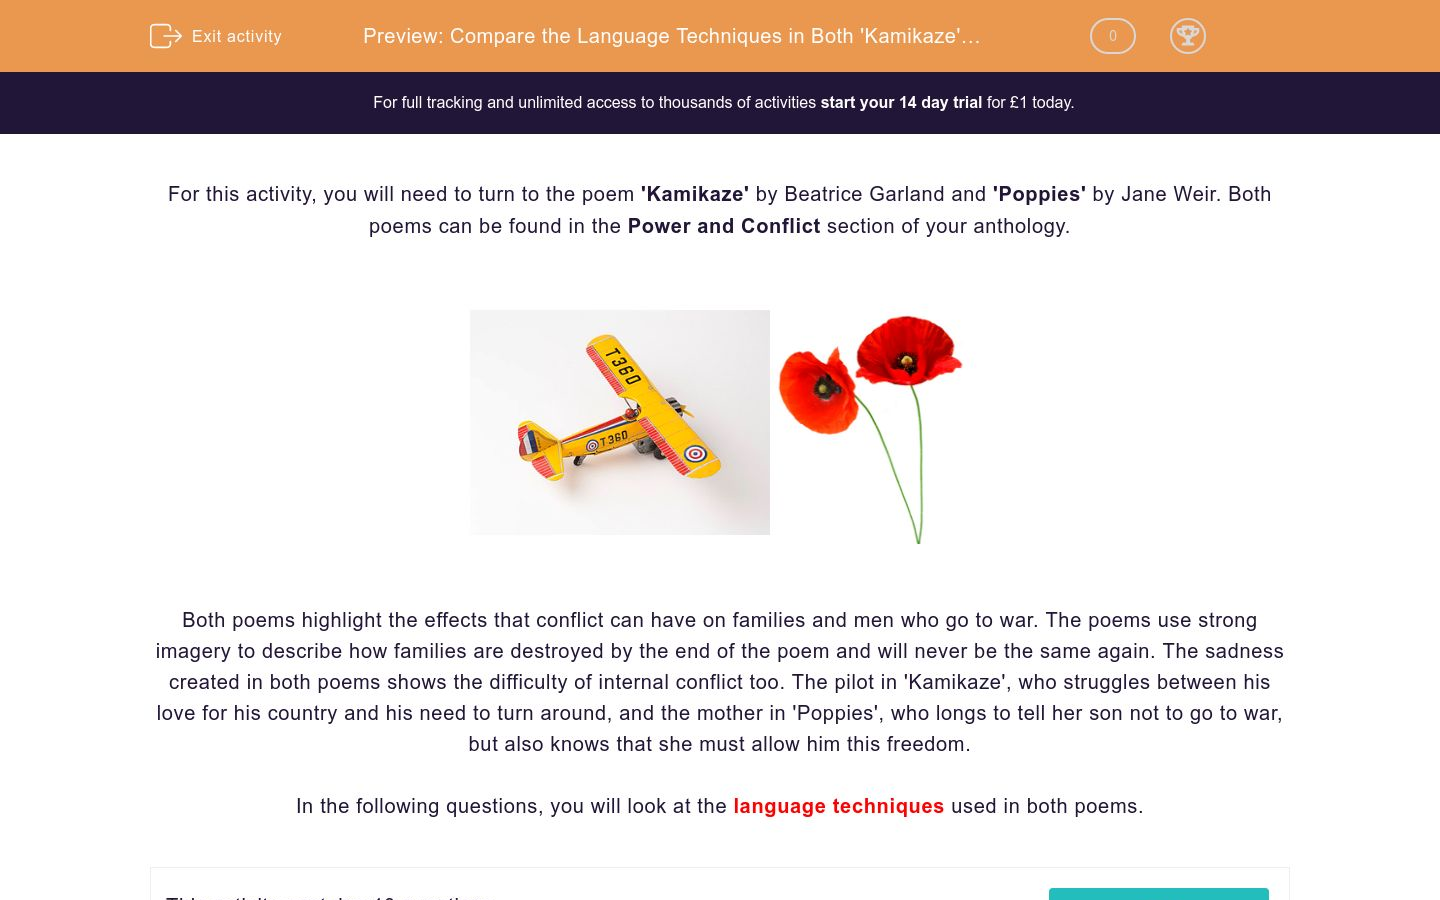 'Compare the Language Techniques in Both 'Kamikaze' and 'Poppies' and Analyse the Effect' worksheet